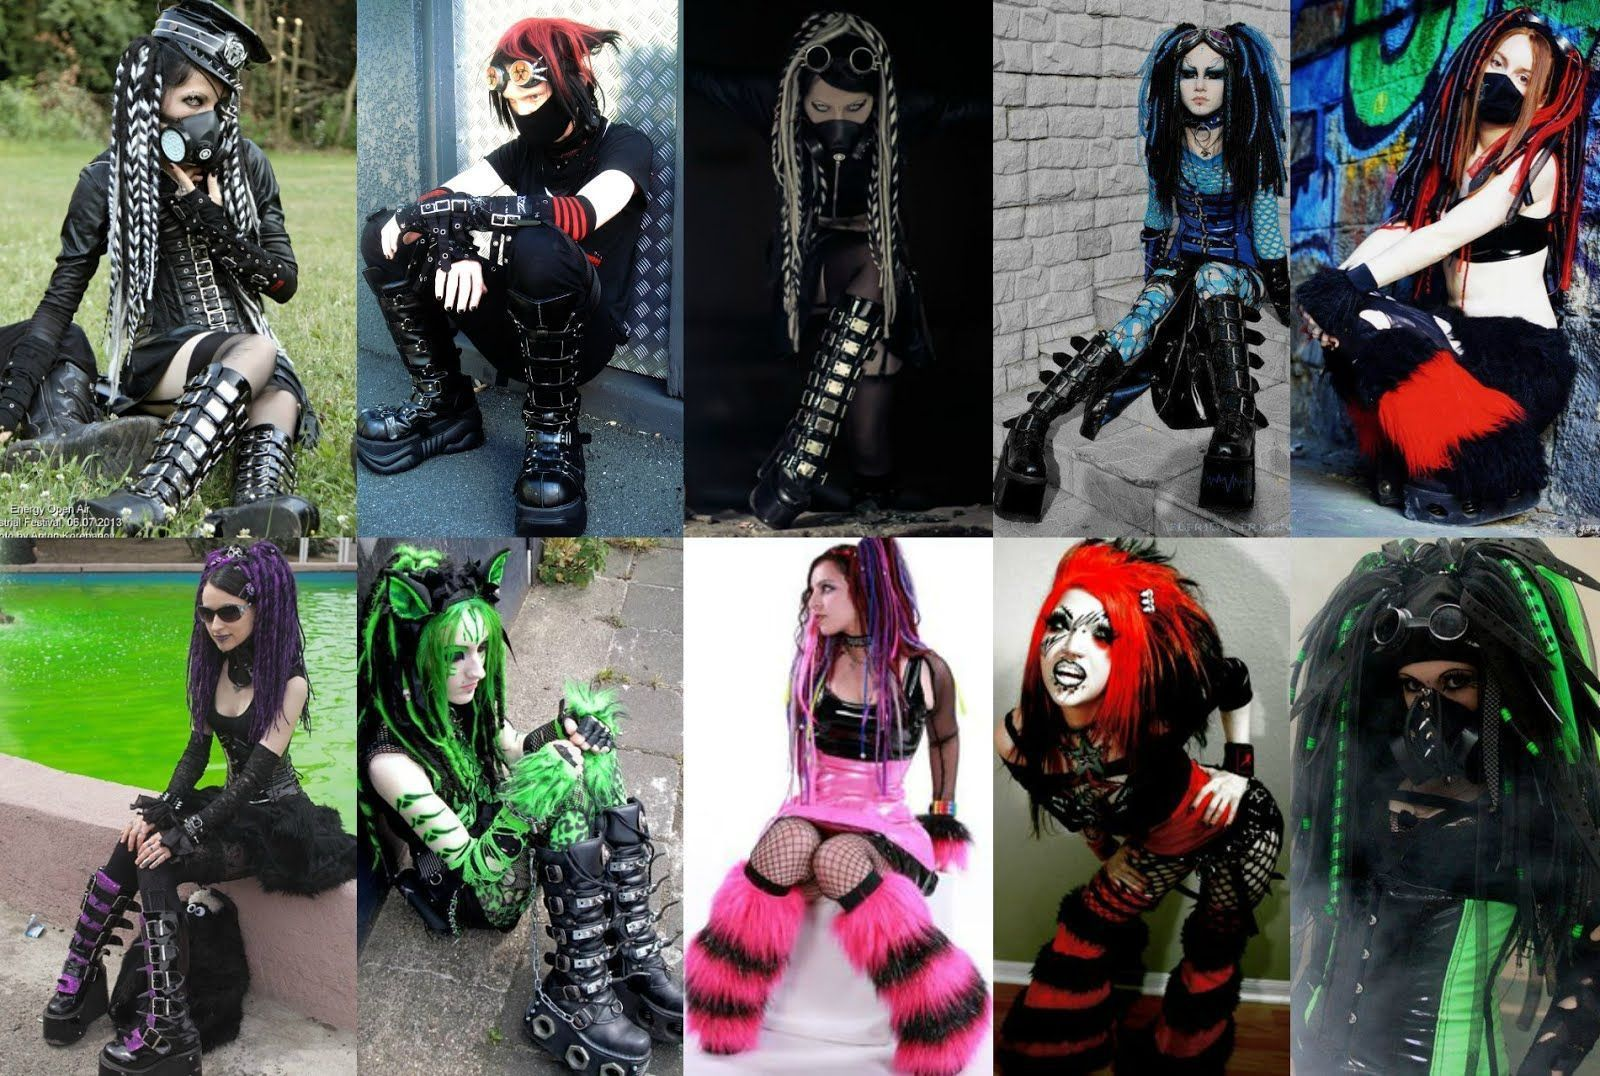 Intro to Cyber Goth: Goth's Futuristic Side